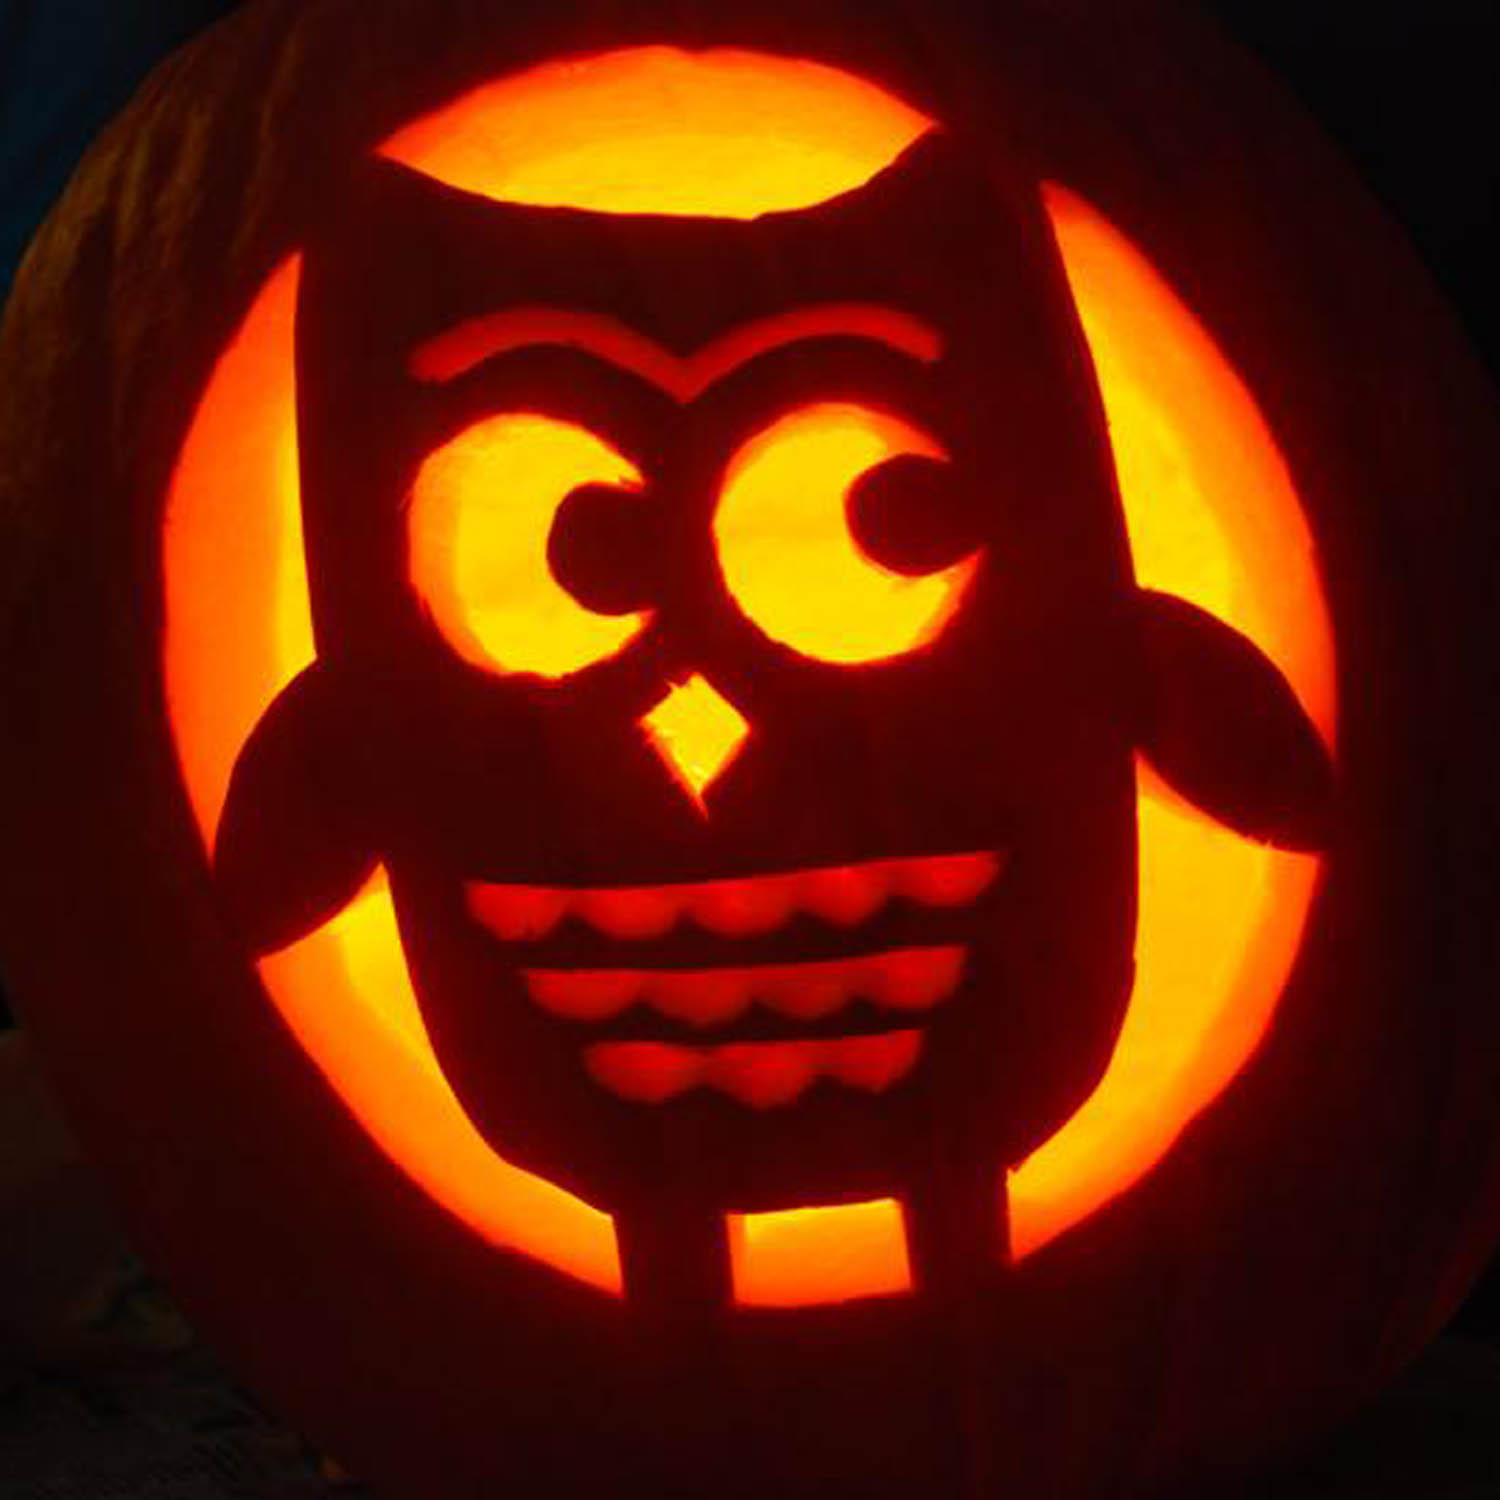 1000+ images about Halloween on Pinterest | Pumpkin carvings, Easy ...